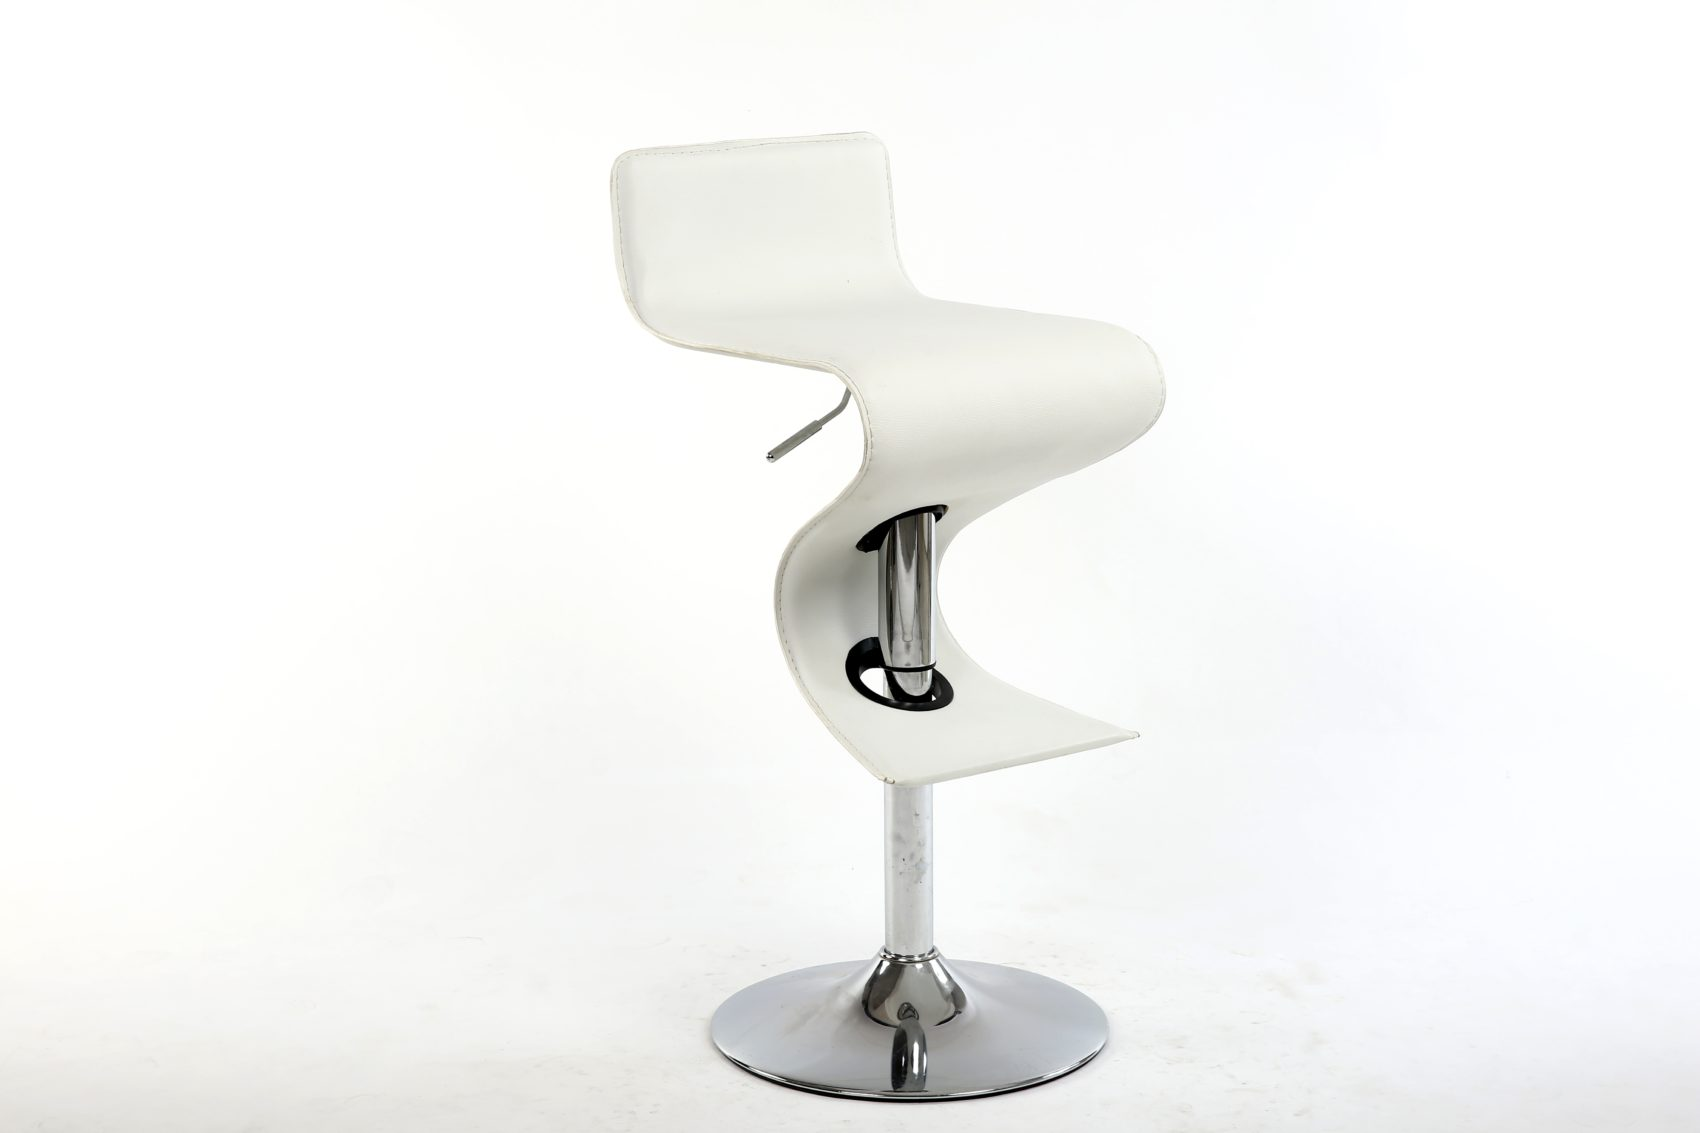 King White Adjustable Height White Bar Stool Bromi Design